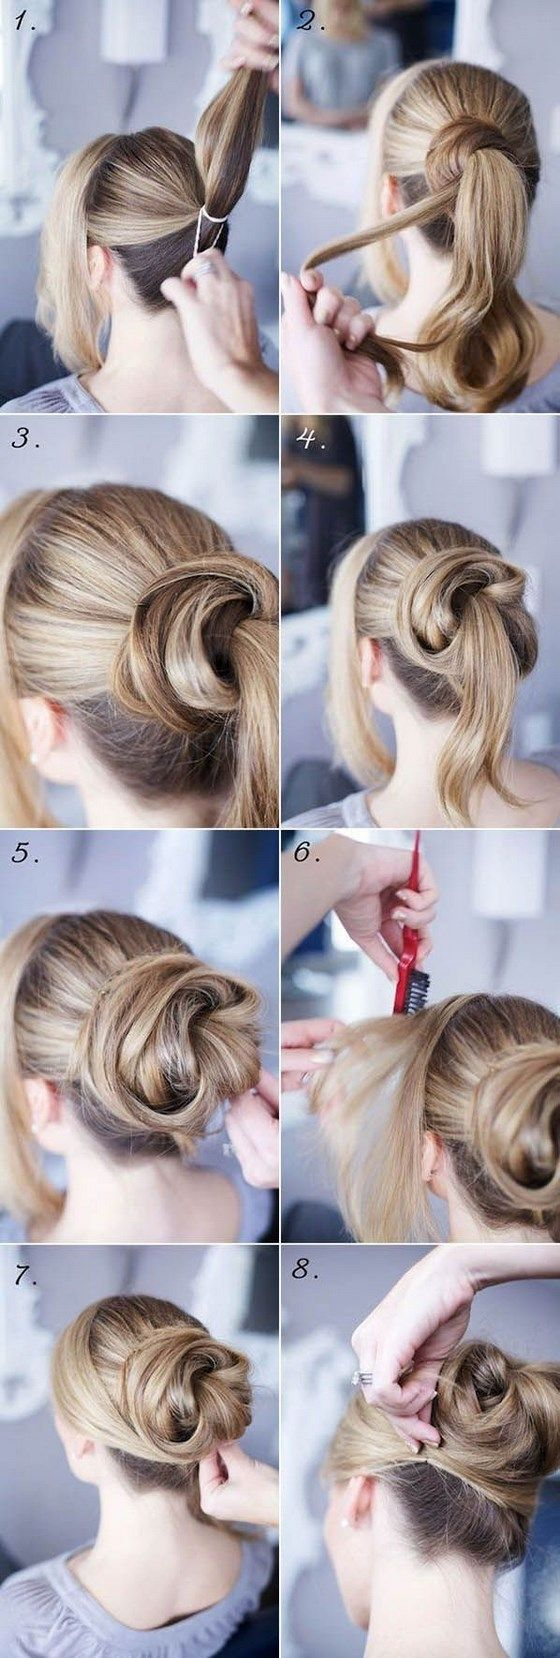 Party Hairstyles - Peinados para Fiestas